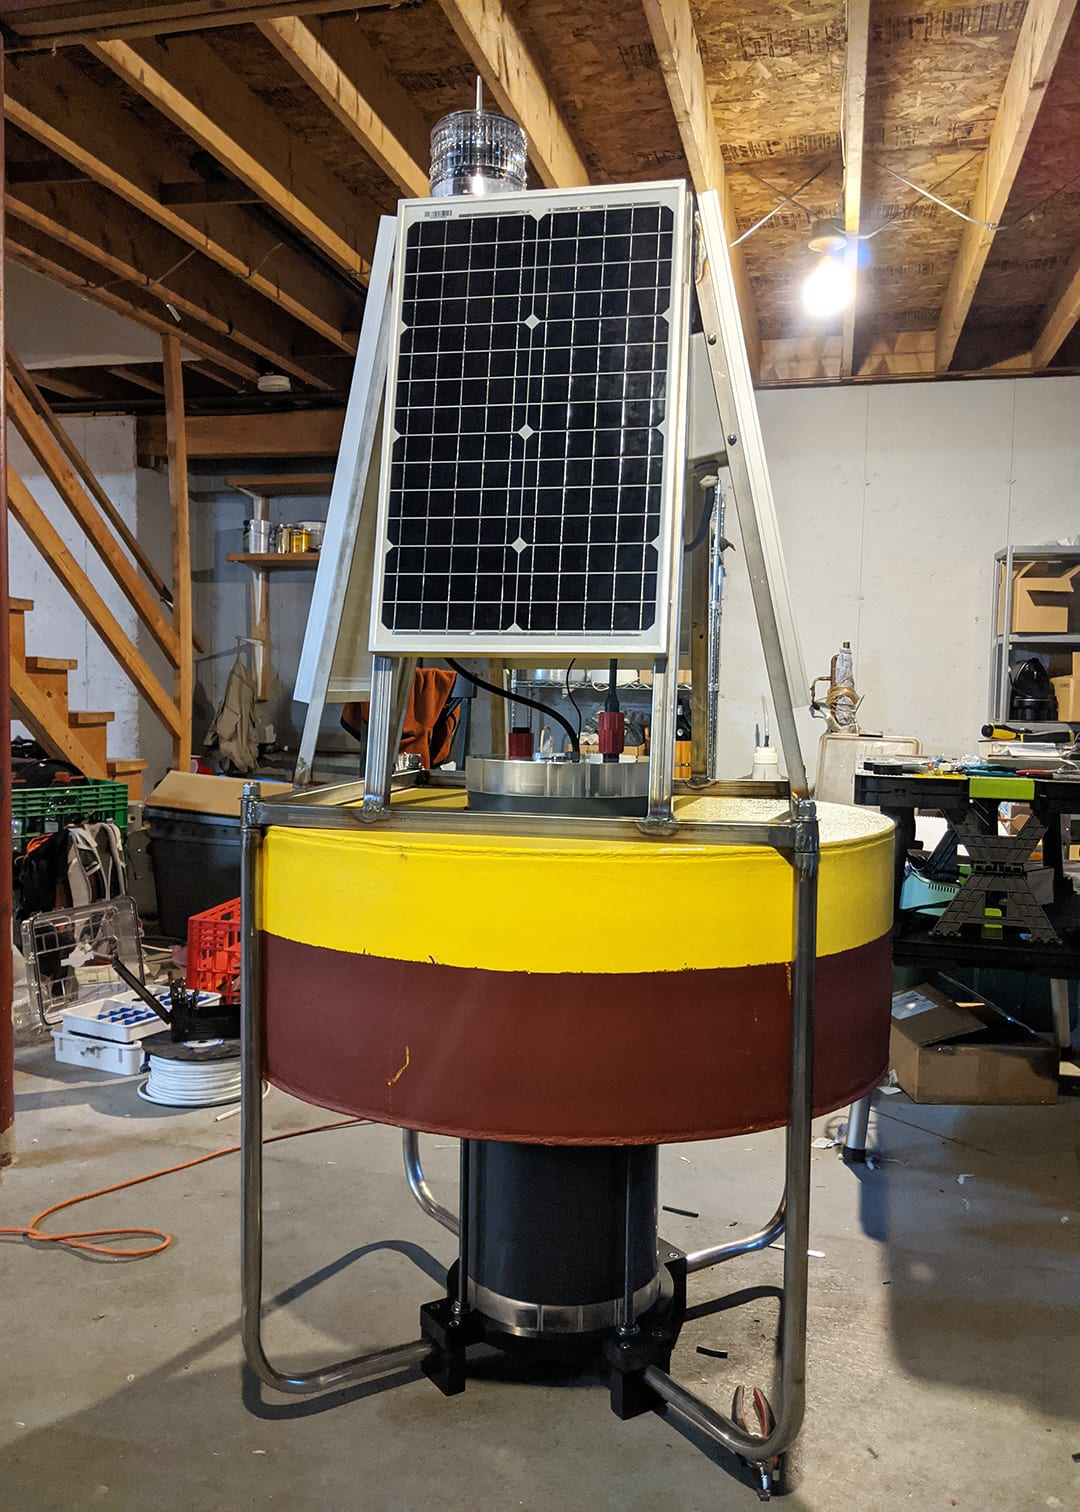 The solar-powered buoy, now assembled with a metal frame, will help to track the flow of carbon elements in the ocean, a necessary insight to study climate's effect on the ocean. (Photo by Matt Long, © Woods Hole Oceanographic Institution)